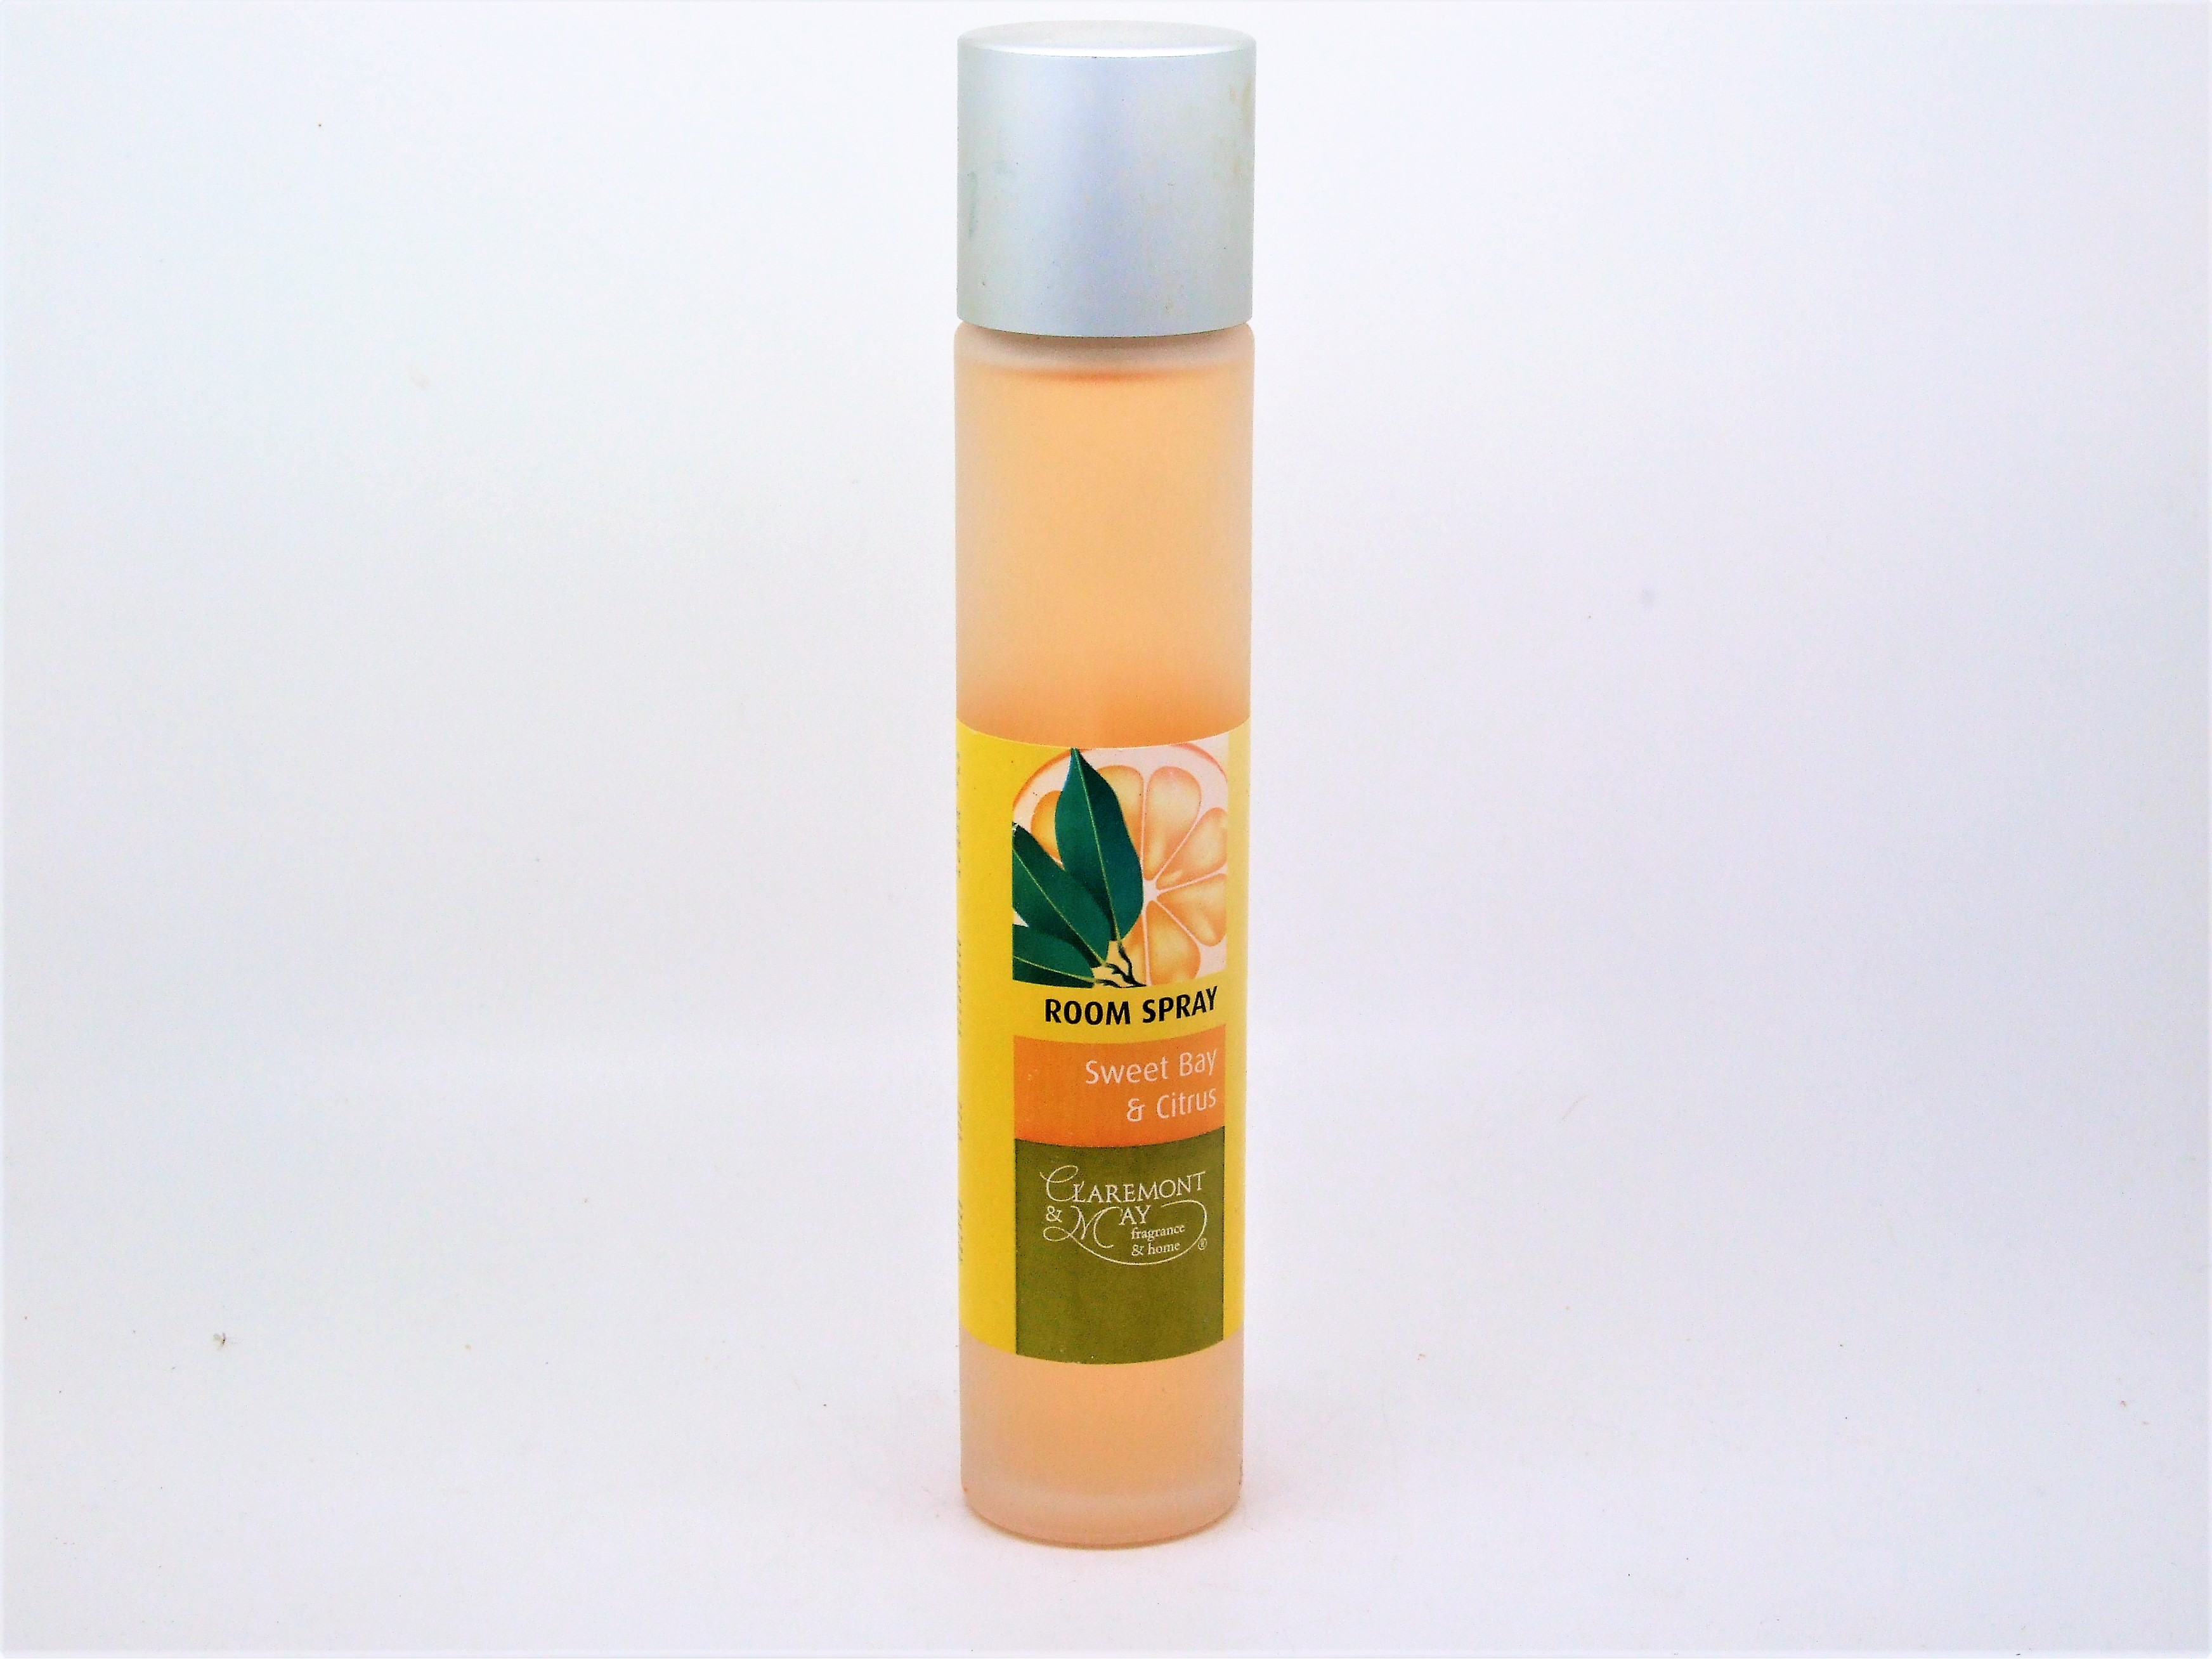 Claremont & May: Sweet Bay & Citrus Room Spray